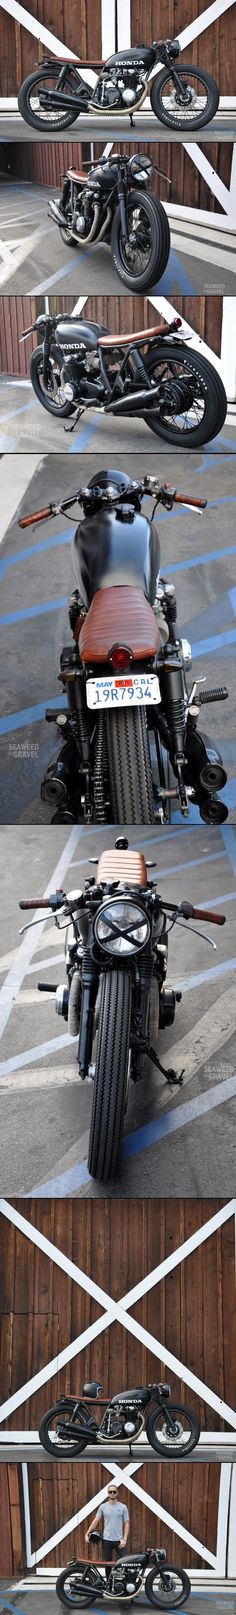 http://seaweedandgravel.com/blogs/news/7831025-cb550-custom-build-by-s-g-builder-brady-young Más